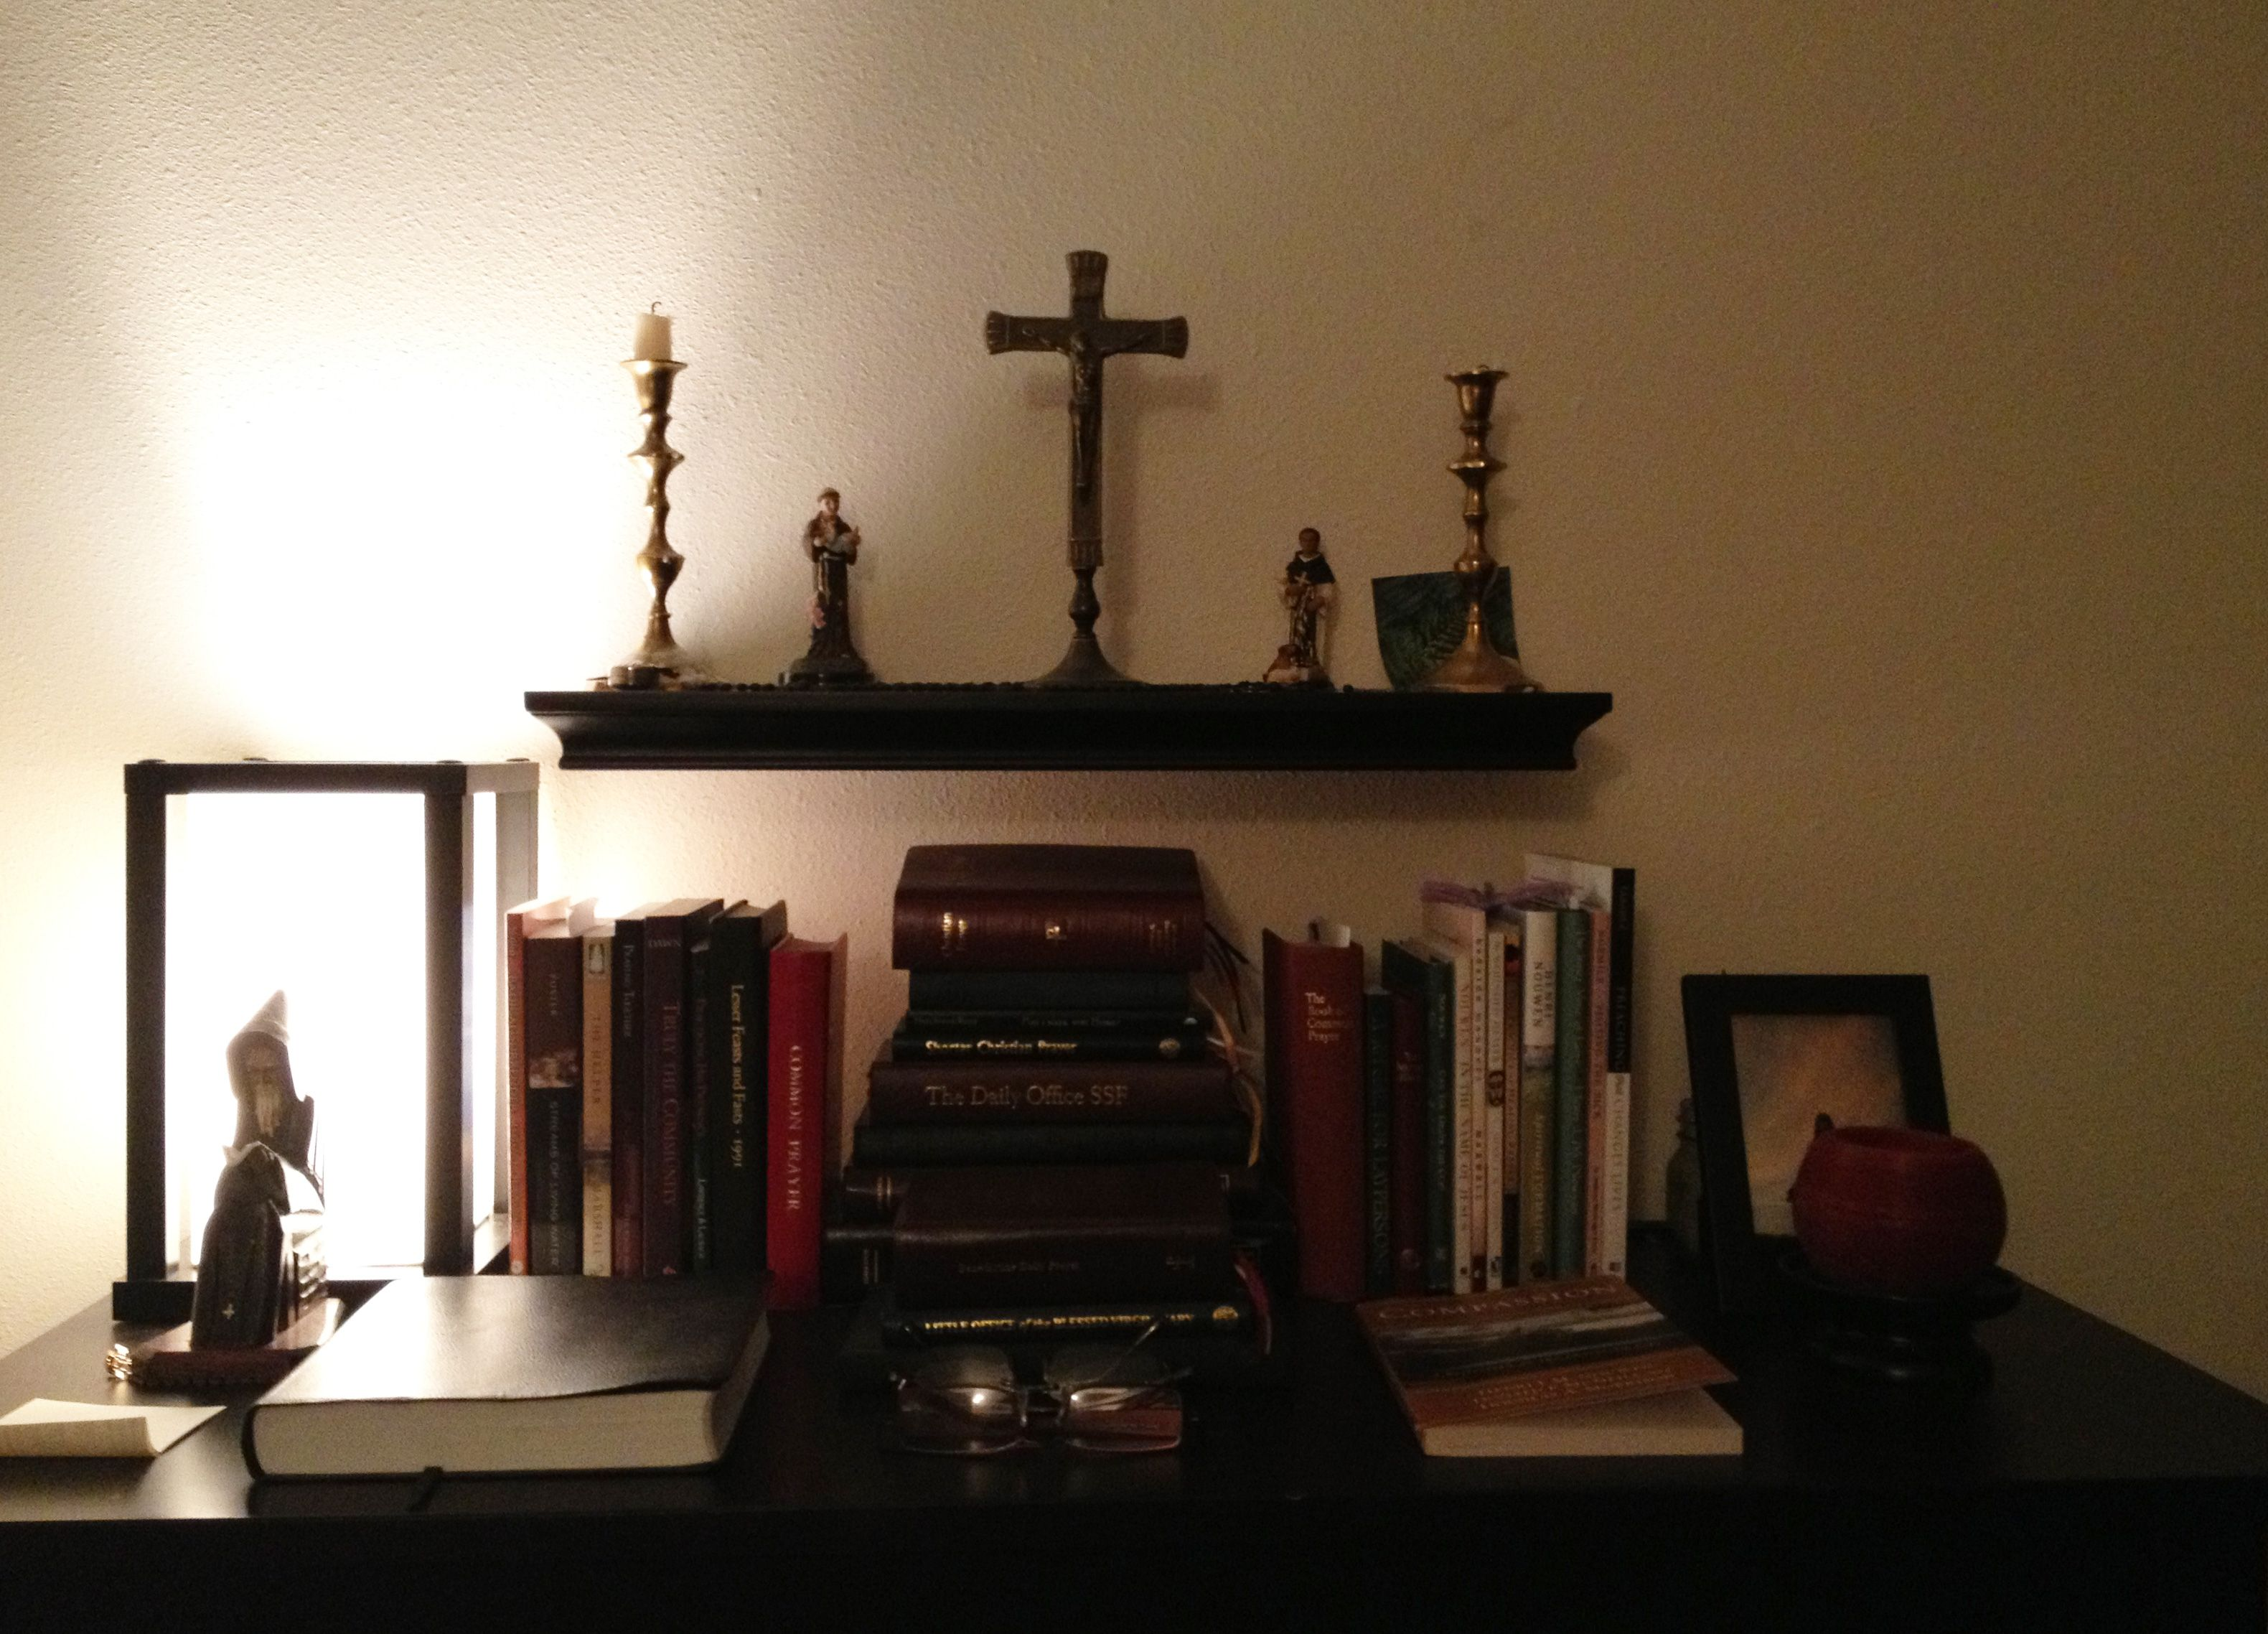 Divine Office Books, Candles, Statues Of Saints,